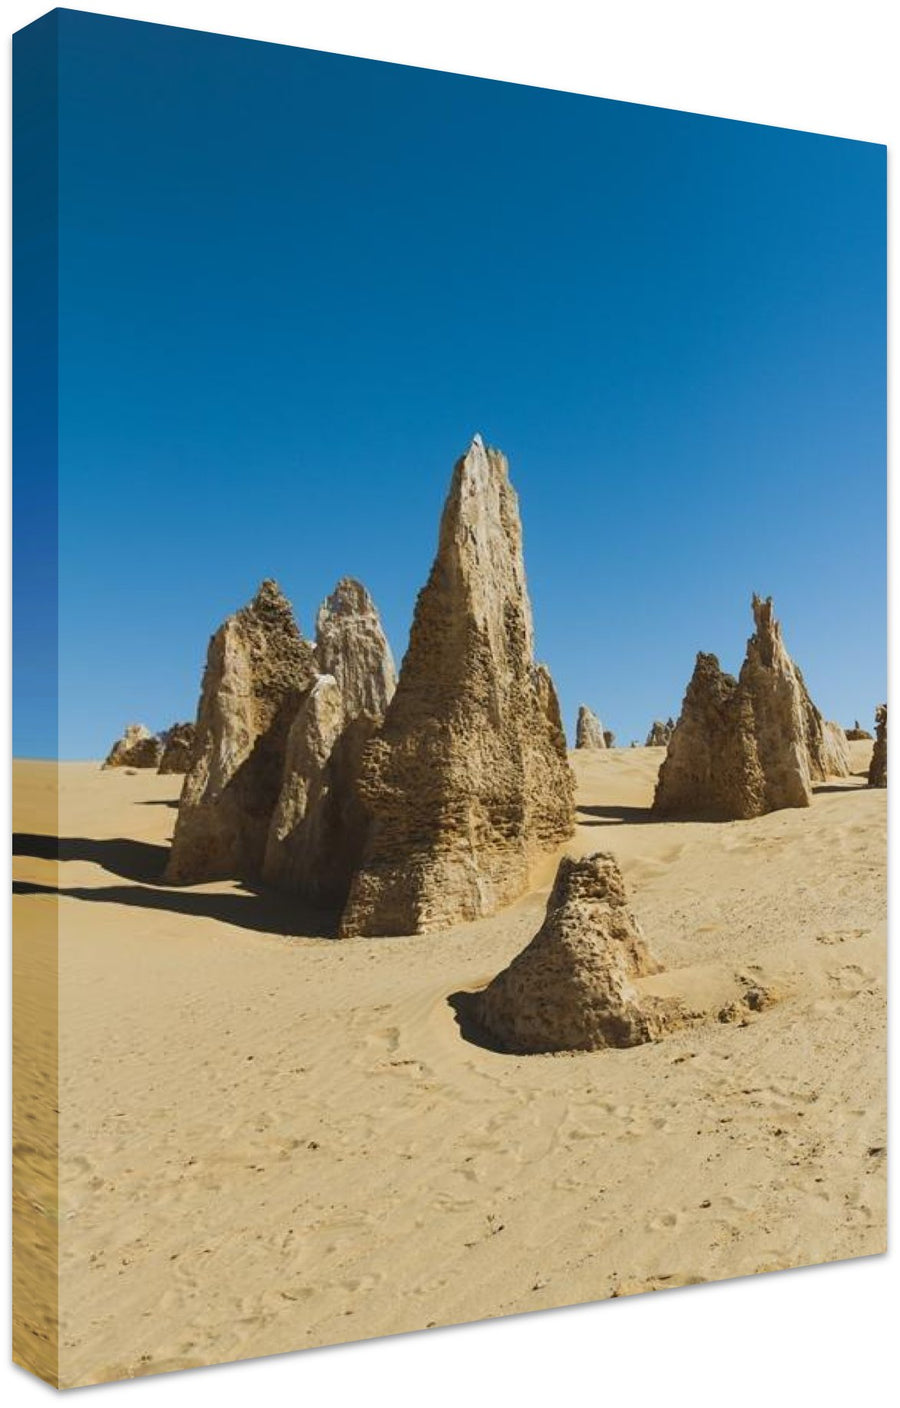 The Pinnacles | Western Australia